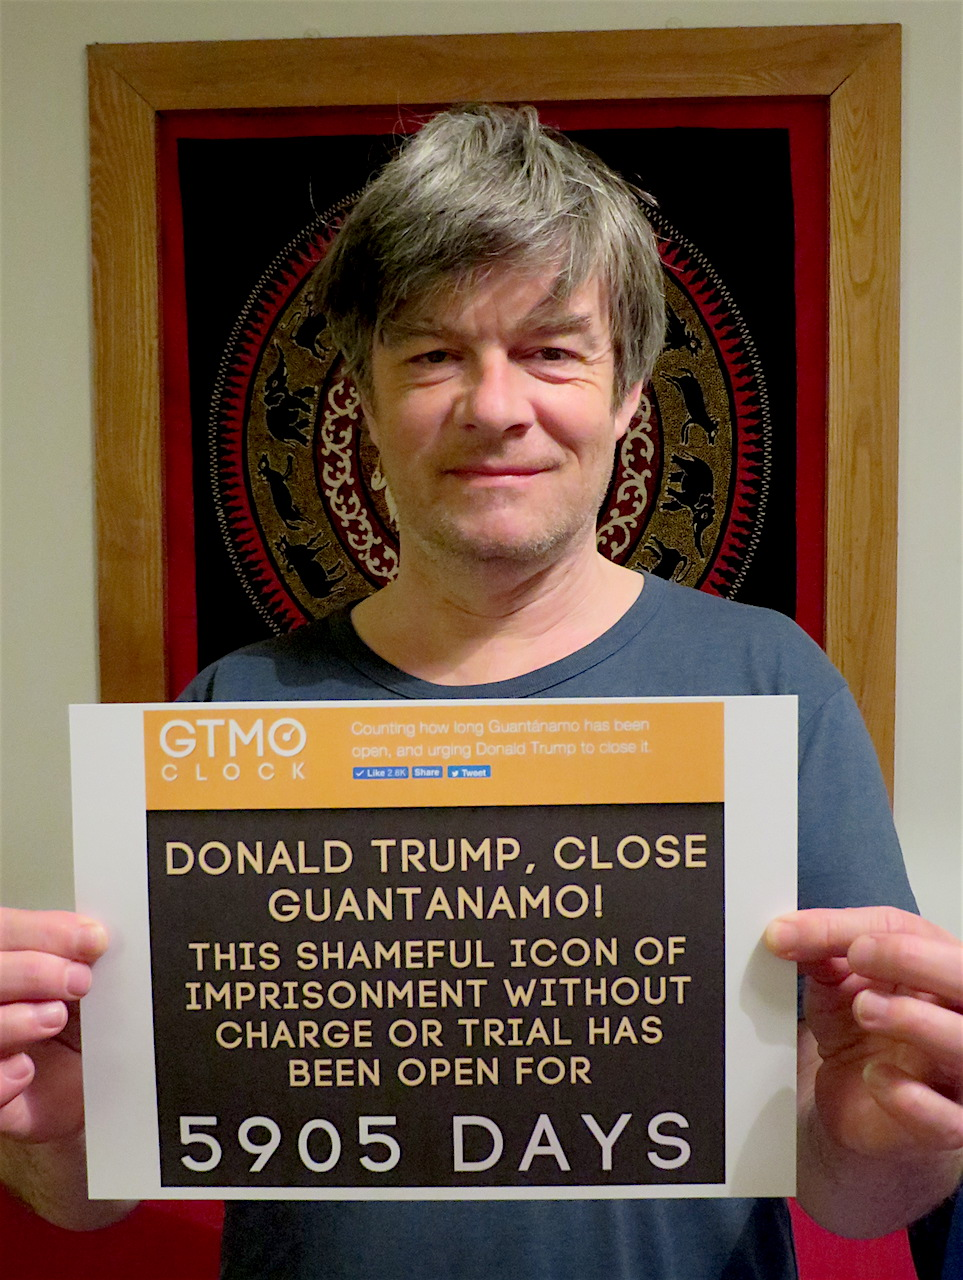 Andy Worthington calling on Donald Trump to close Guantanamo today, March 12, 2018. Andy is holding poster showing that, today, the prison has been open for 5,905 days.